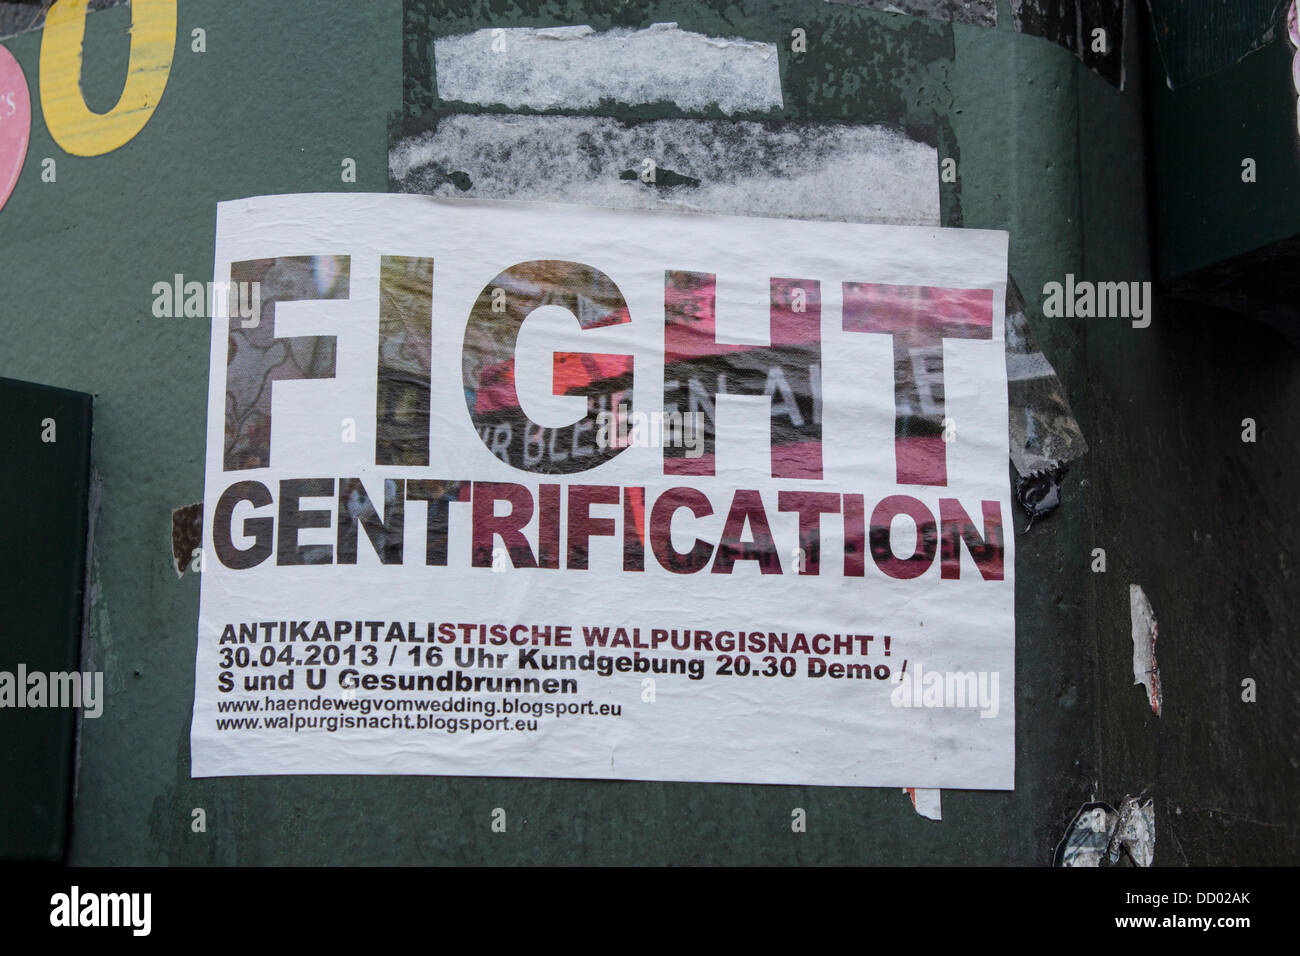 Flyer / sticker stuck on lamp post advertising protest march against gentrification and social exclusion Berlin - Stock Image